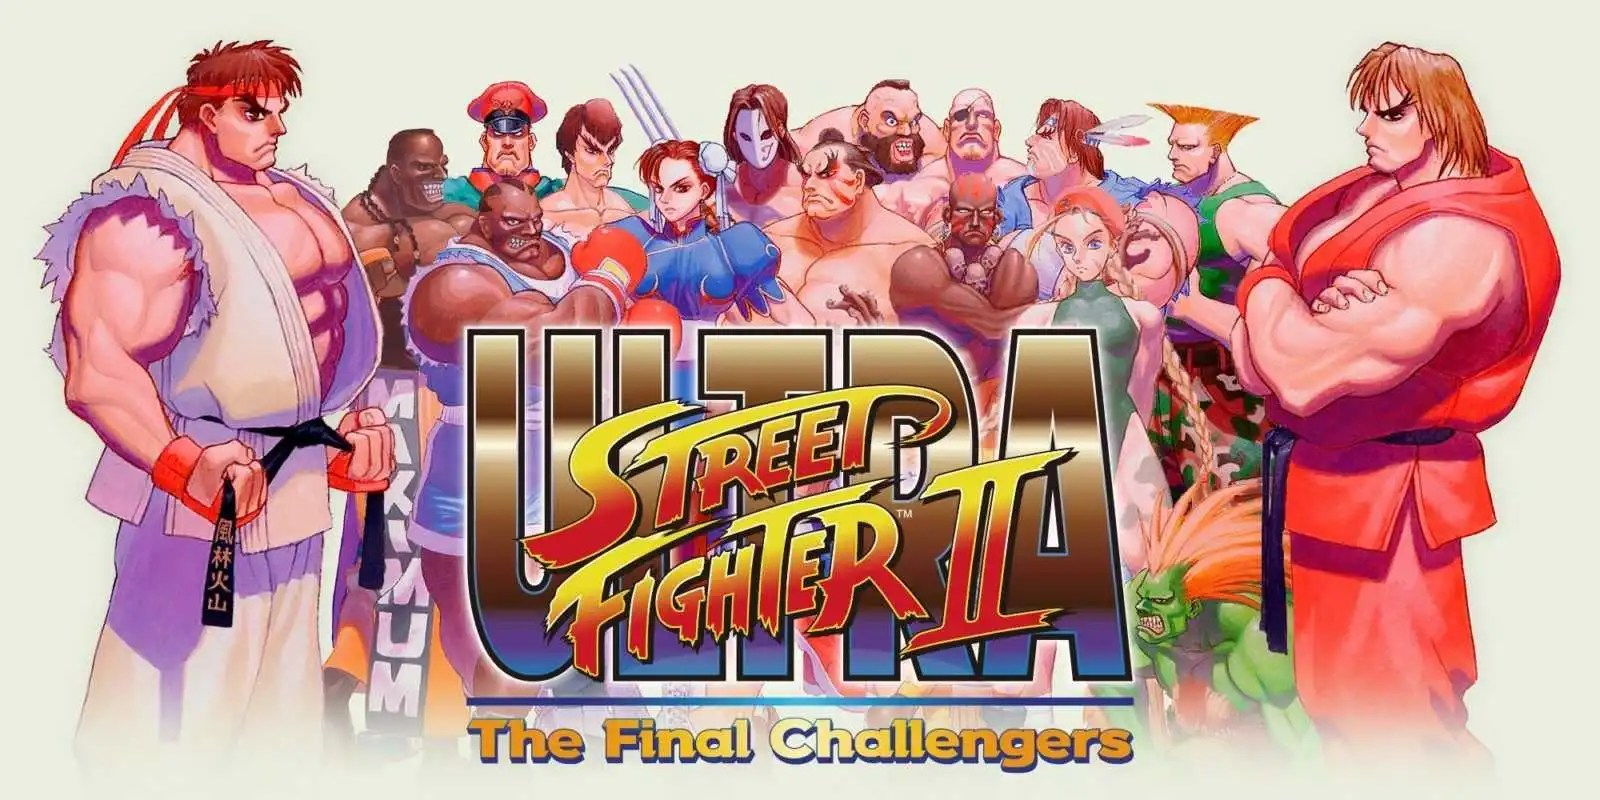 Un nuovo trailer per Ultra Street Fighter II The Final Challengers